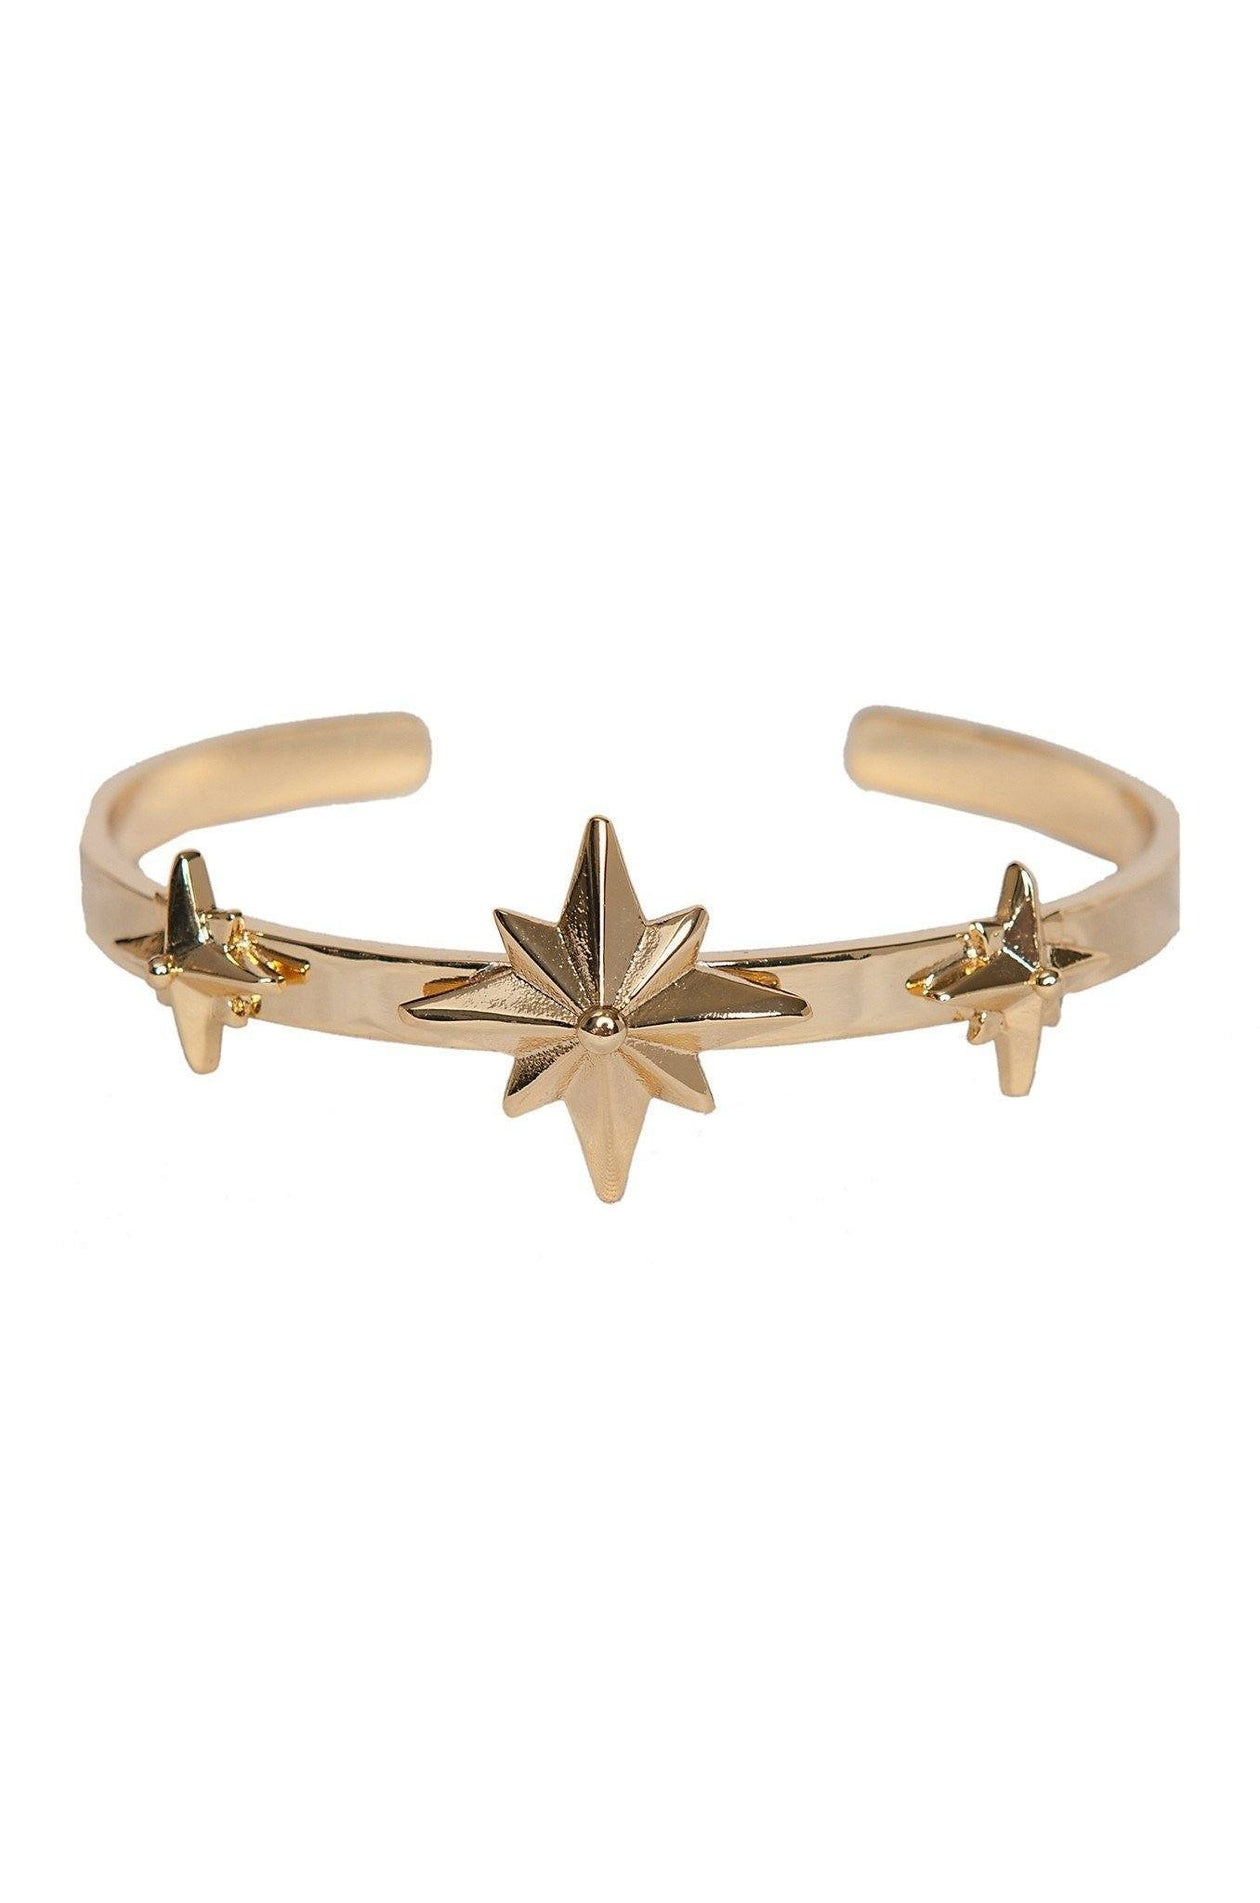 Wander Woman Arm Band in Gold by Ettika